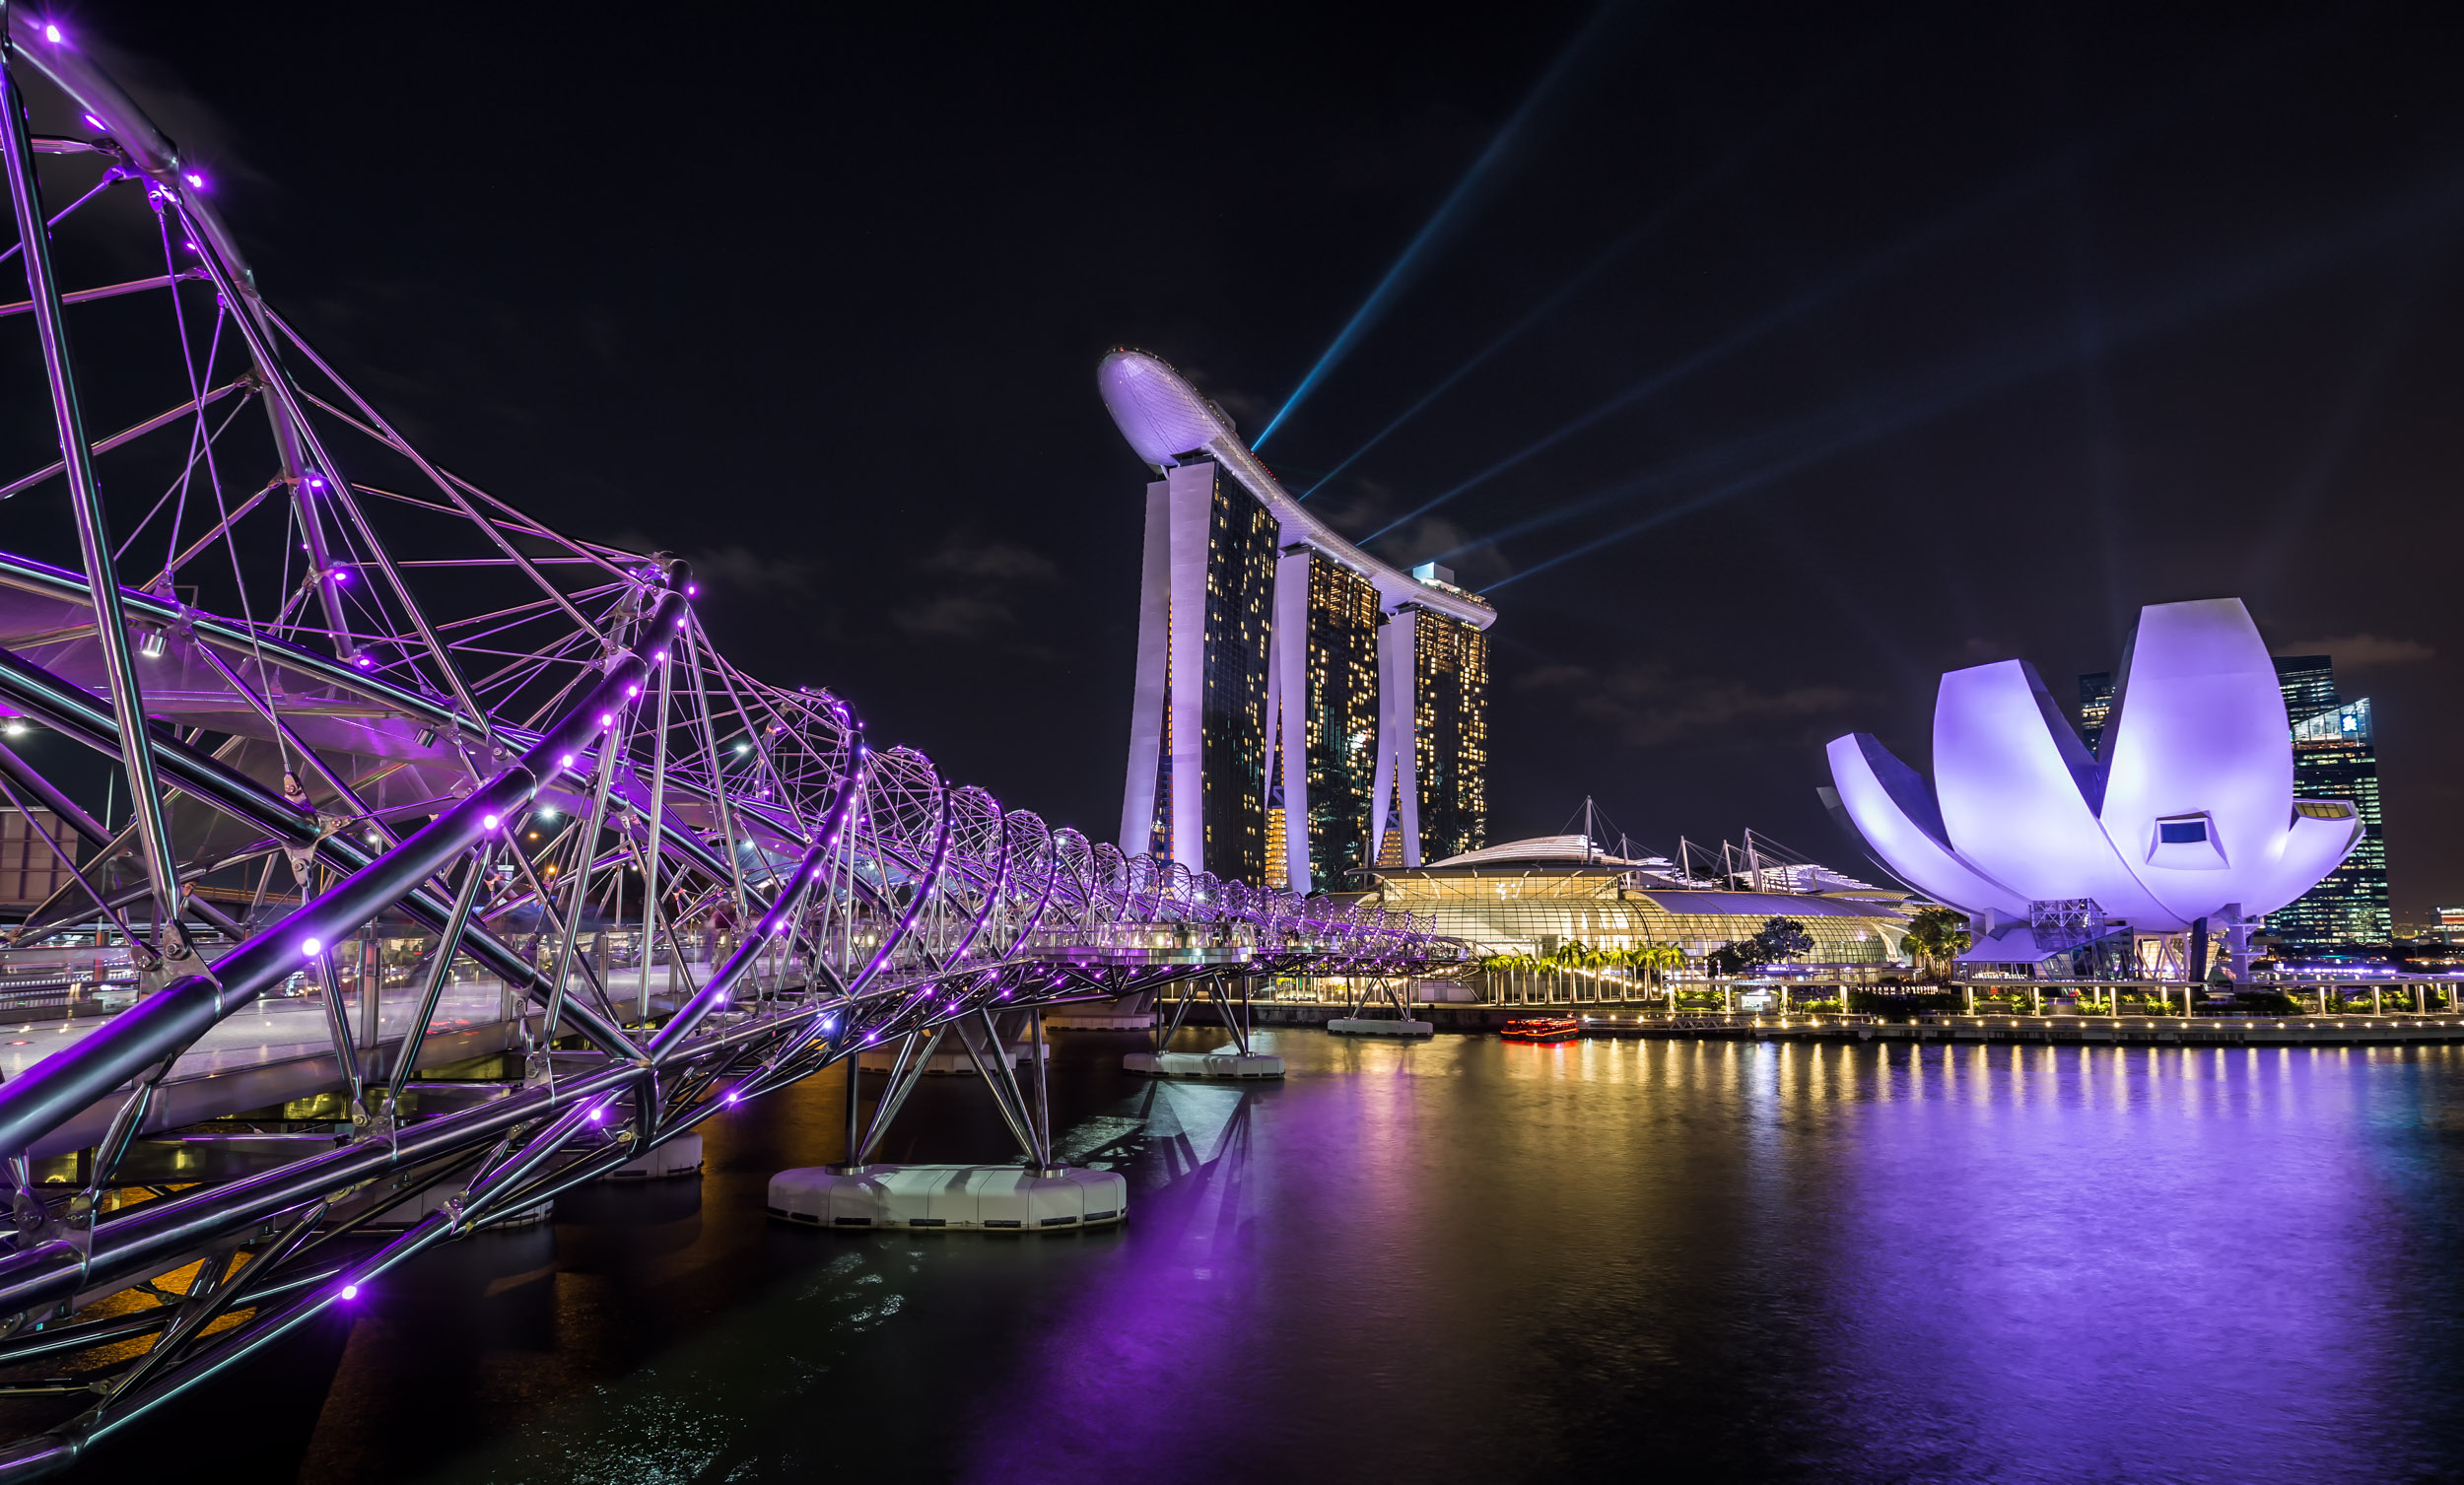 Marina Bay Sands at Night (Singapore)